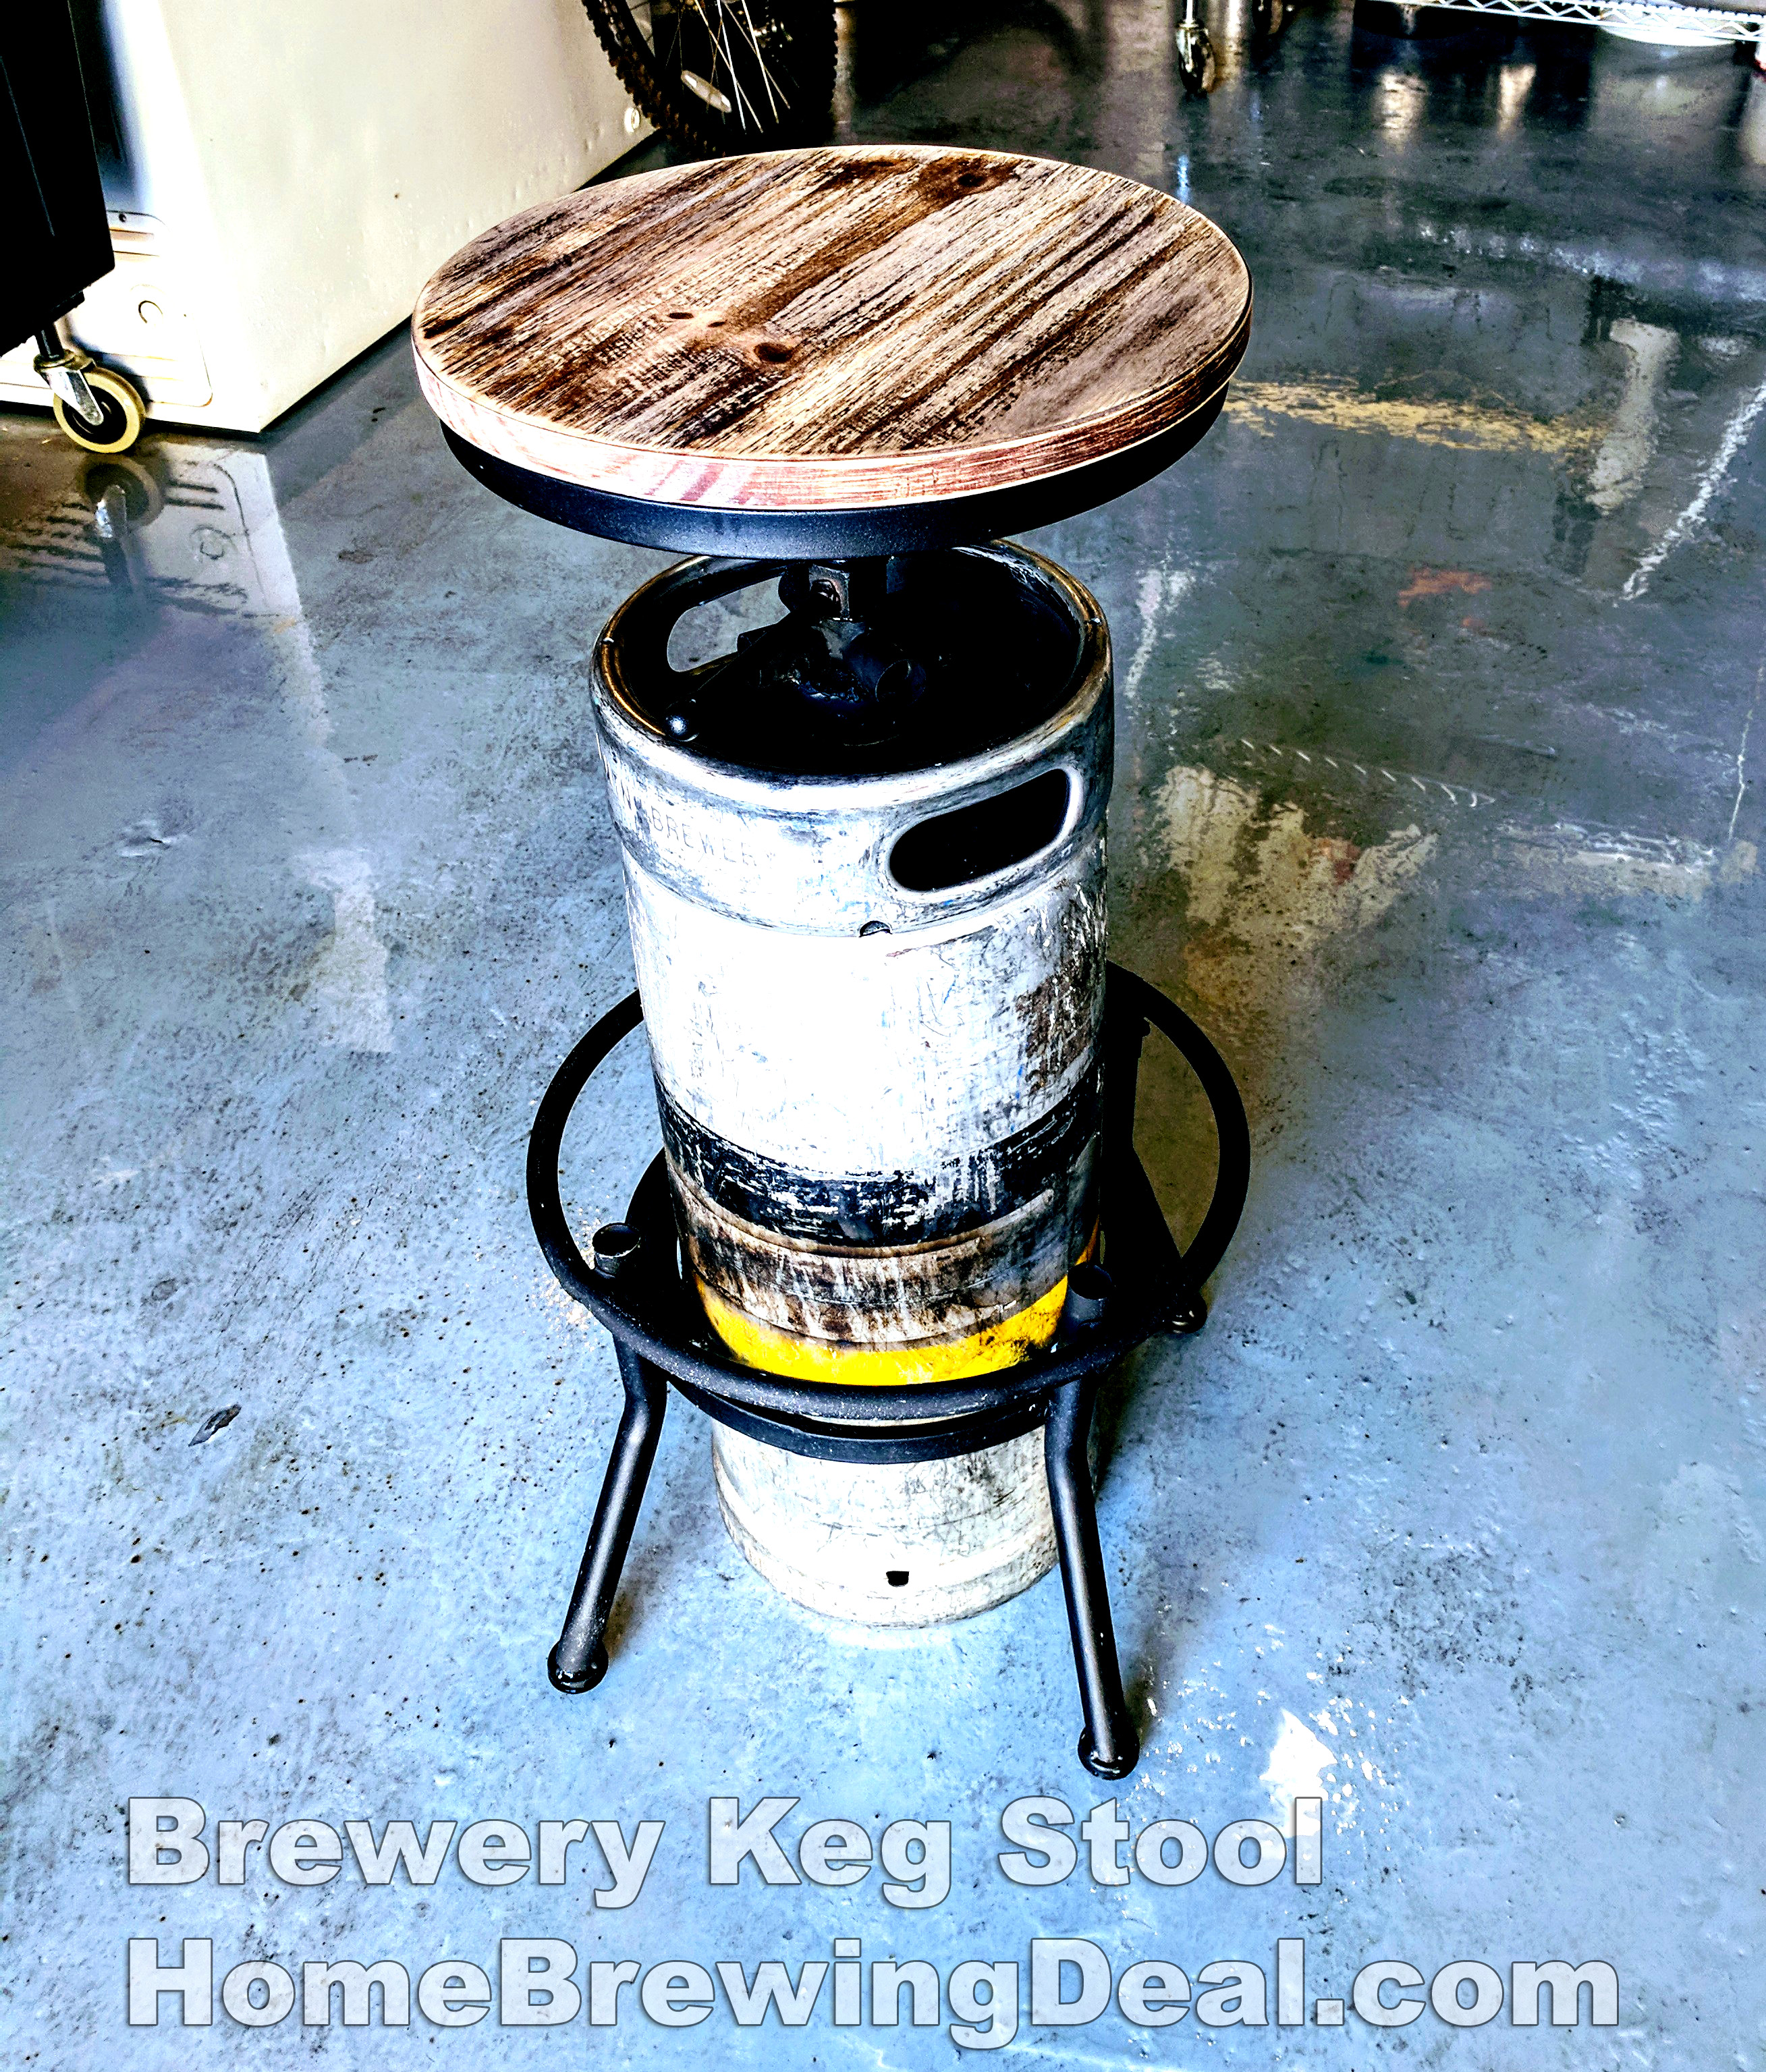 Beer Keg Bar Stool Kit Stool Keg Kit16338 Beer Keg Stool